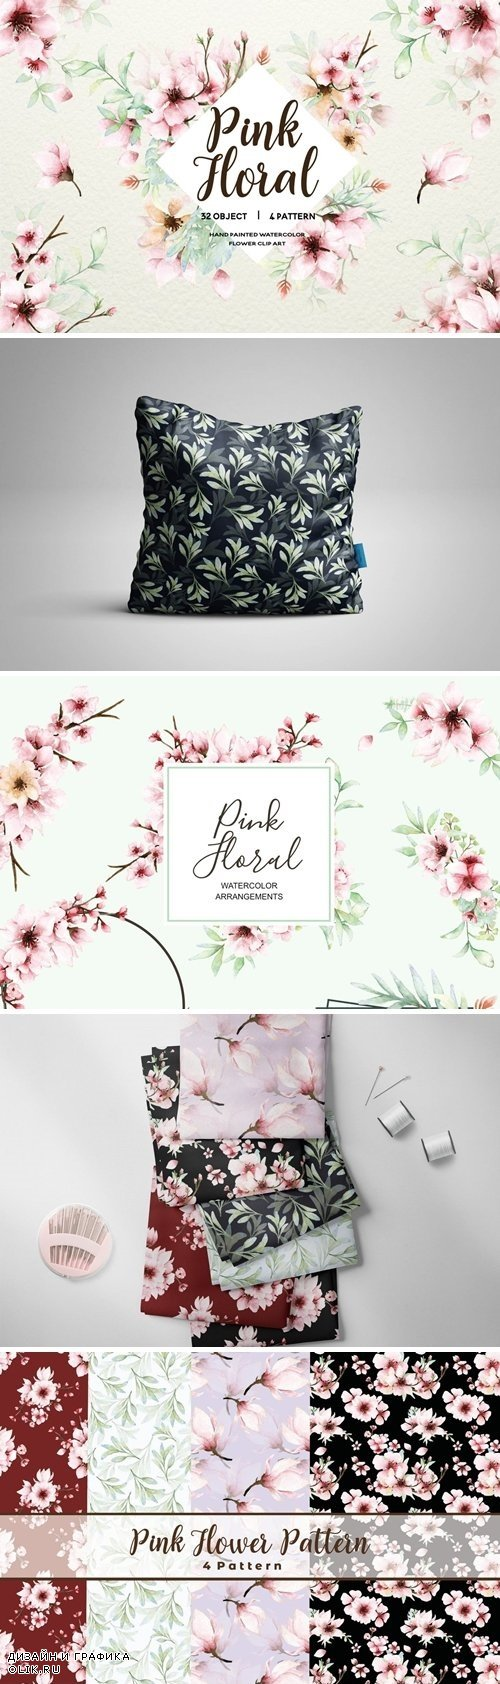 Pink Floral - Sakura Watercolor set - 3930530